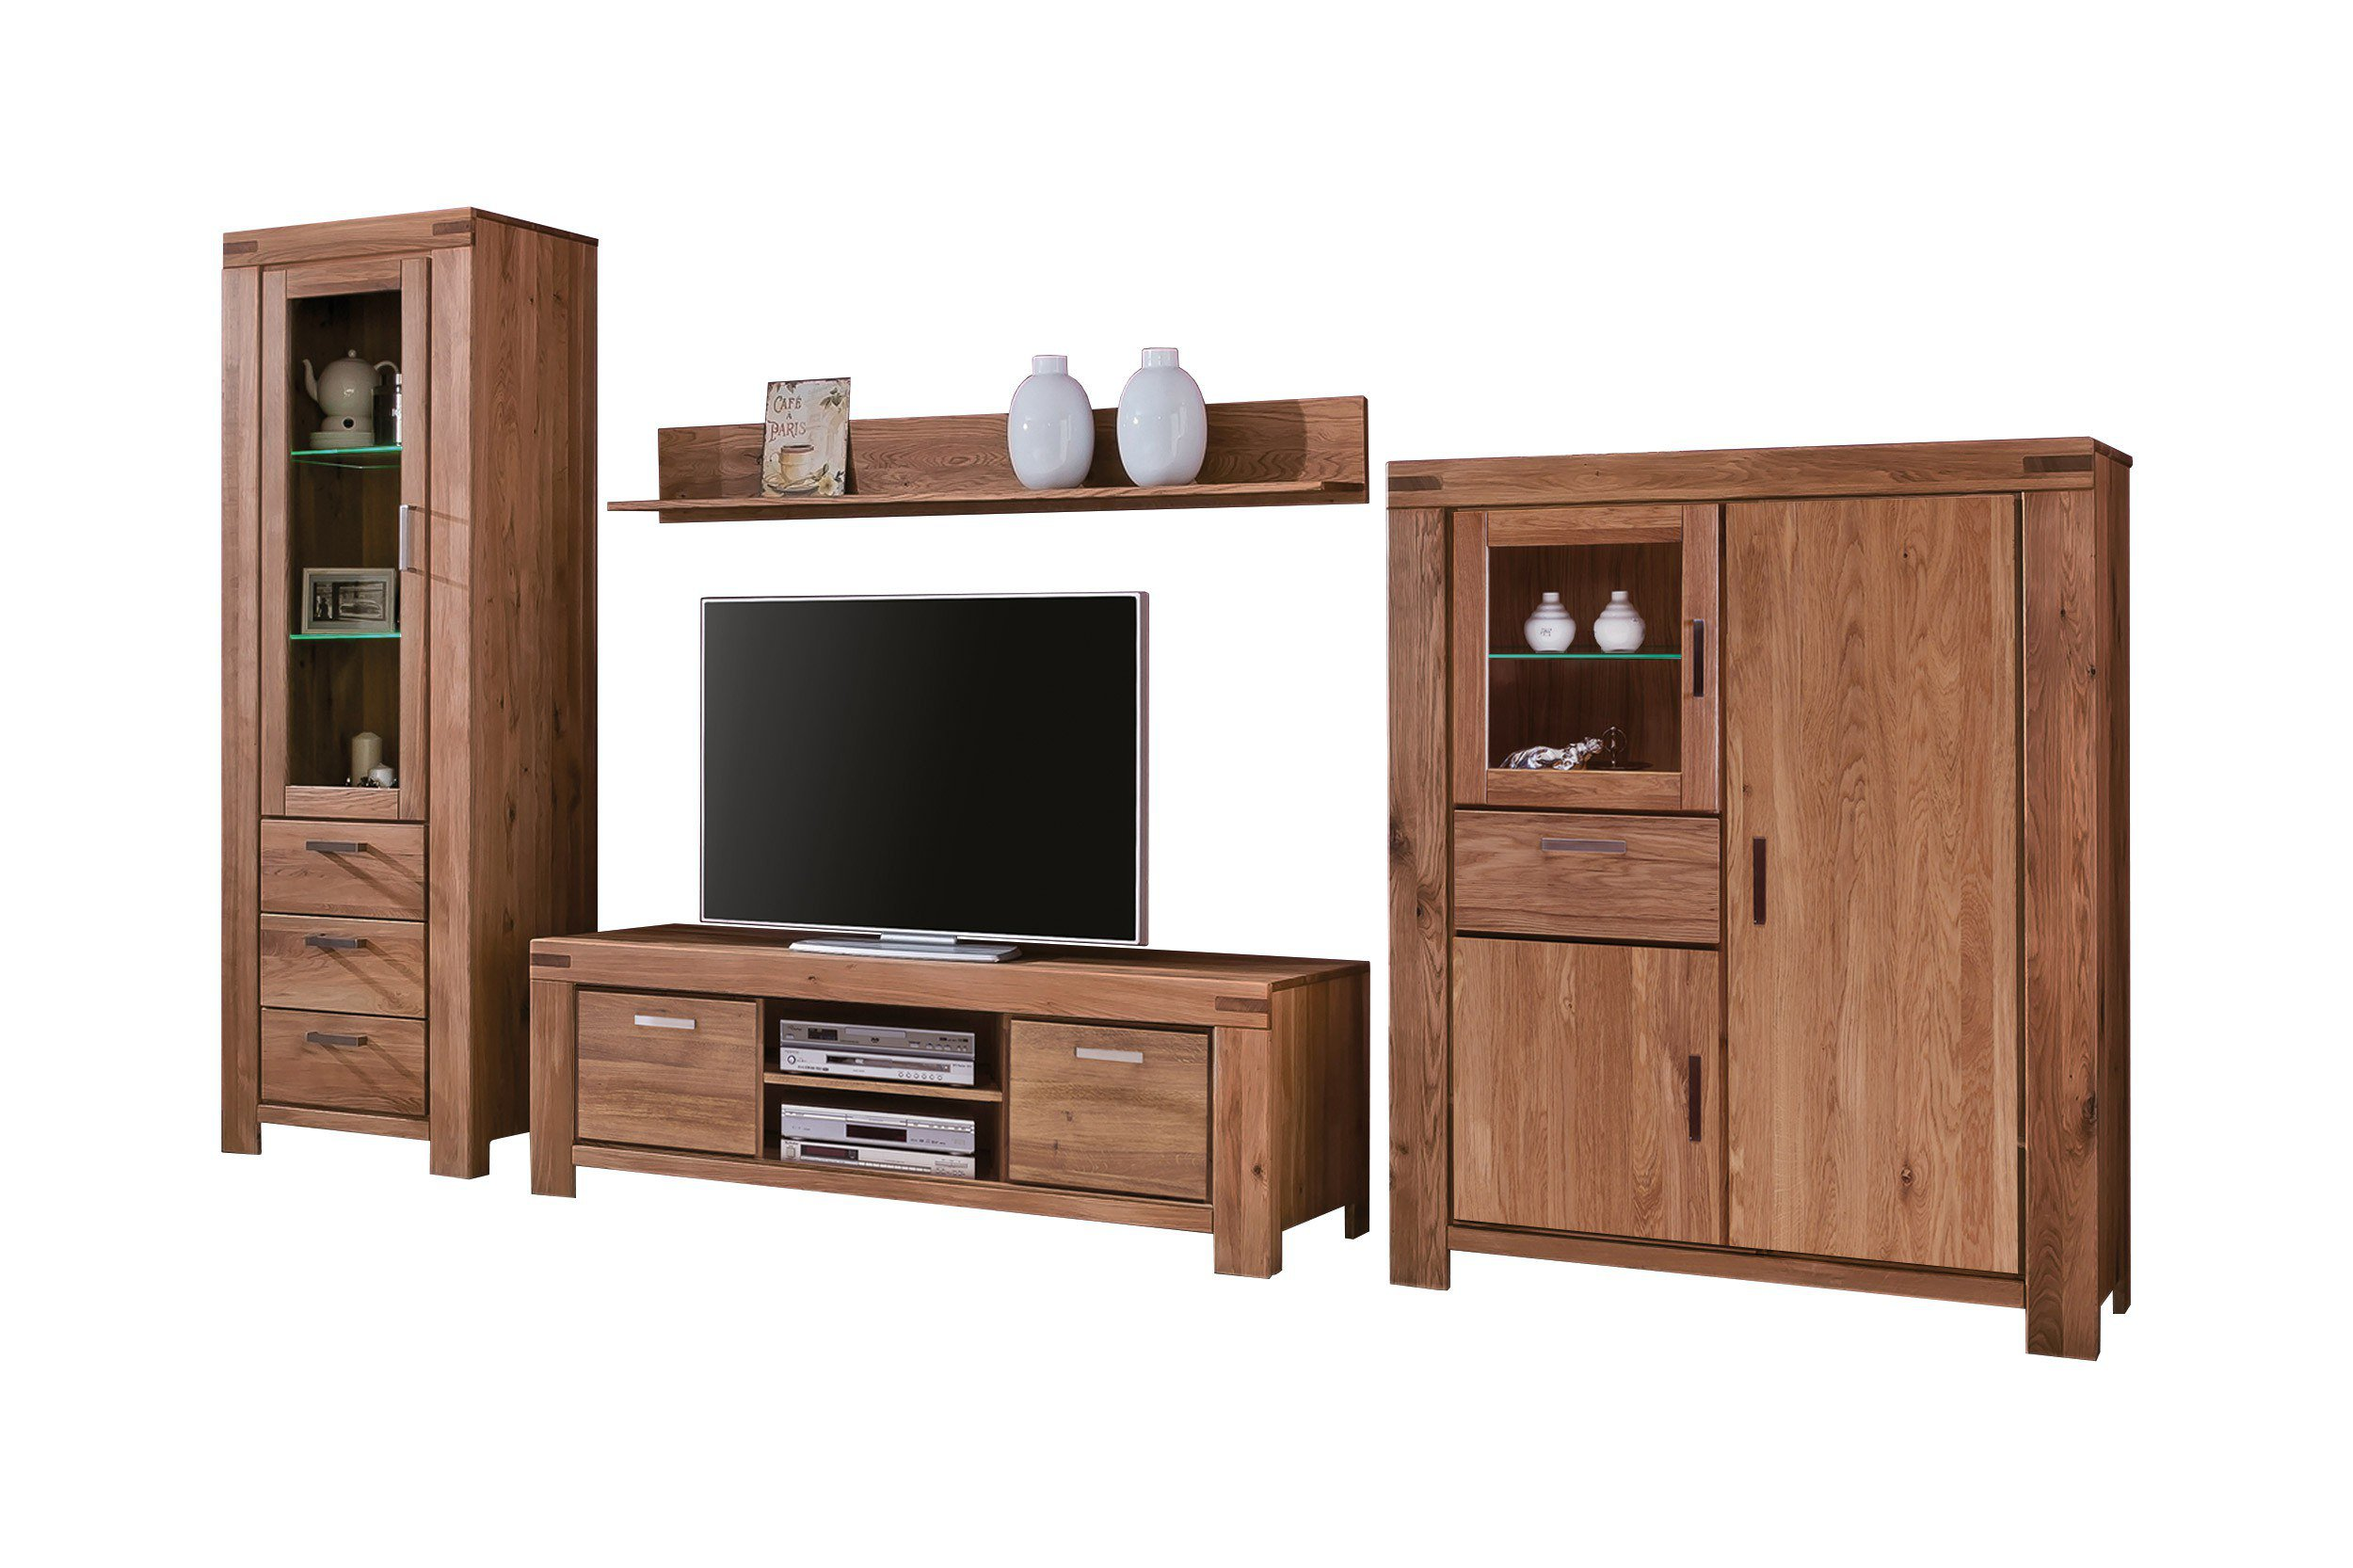 elfo m bel wohnwand kira wildeiche massiv m bel letz ihr online shop. Black Bedroom Furniture Sets. Home Design Ideas